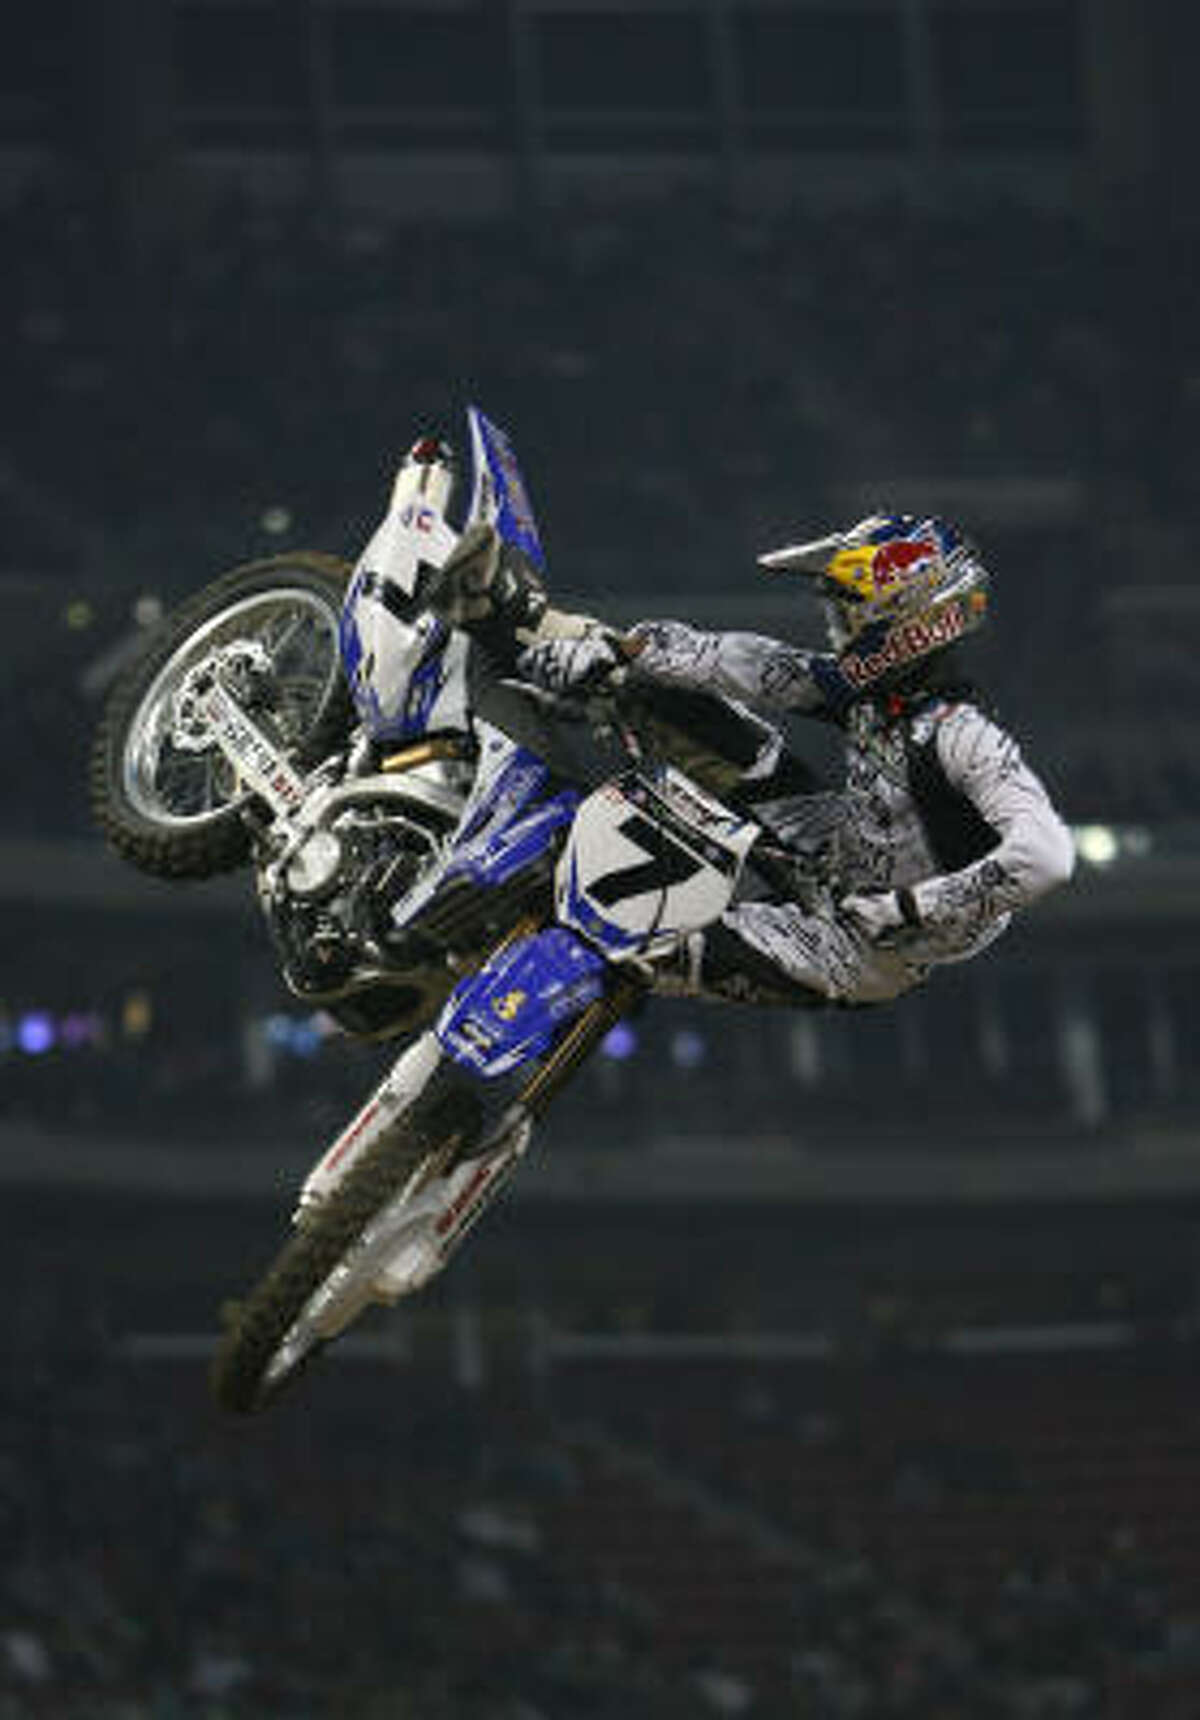 James M. Stewart wins the second heat of the AMA Supercross class at the 2009 Houston Supercross.